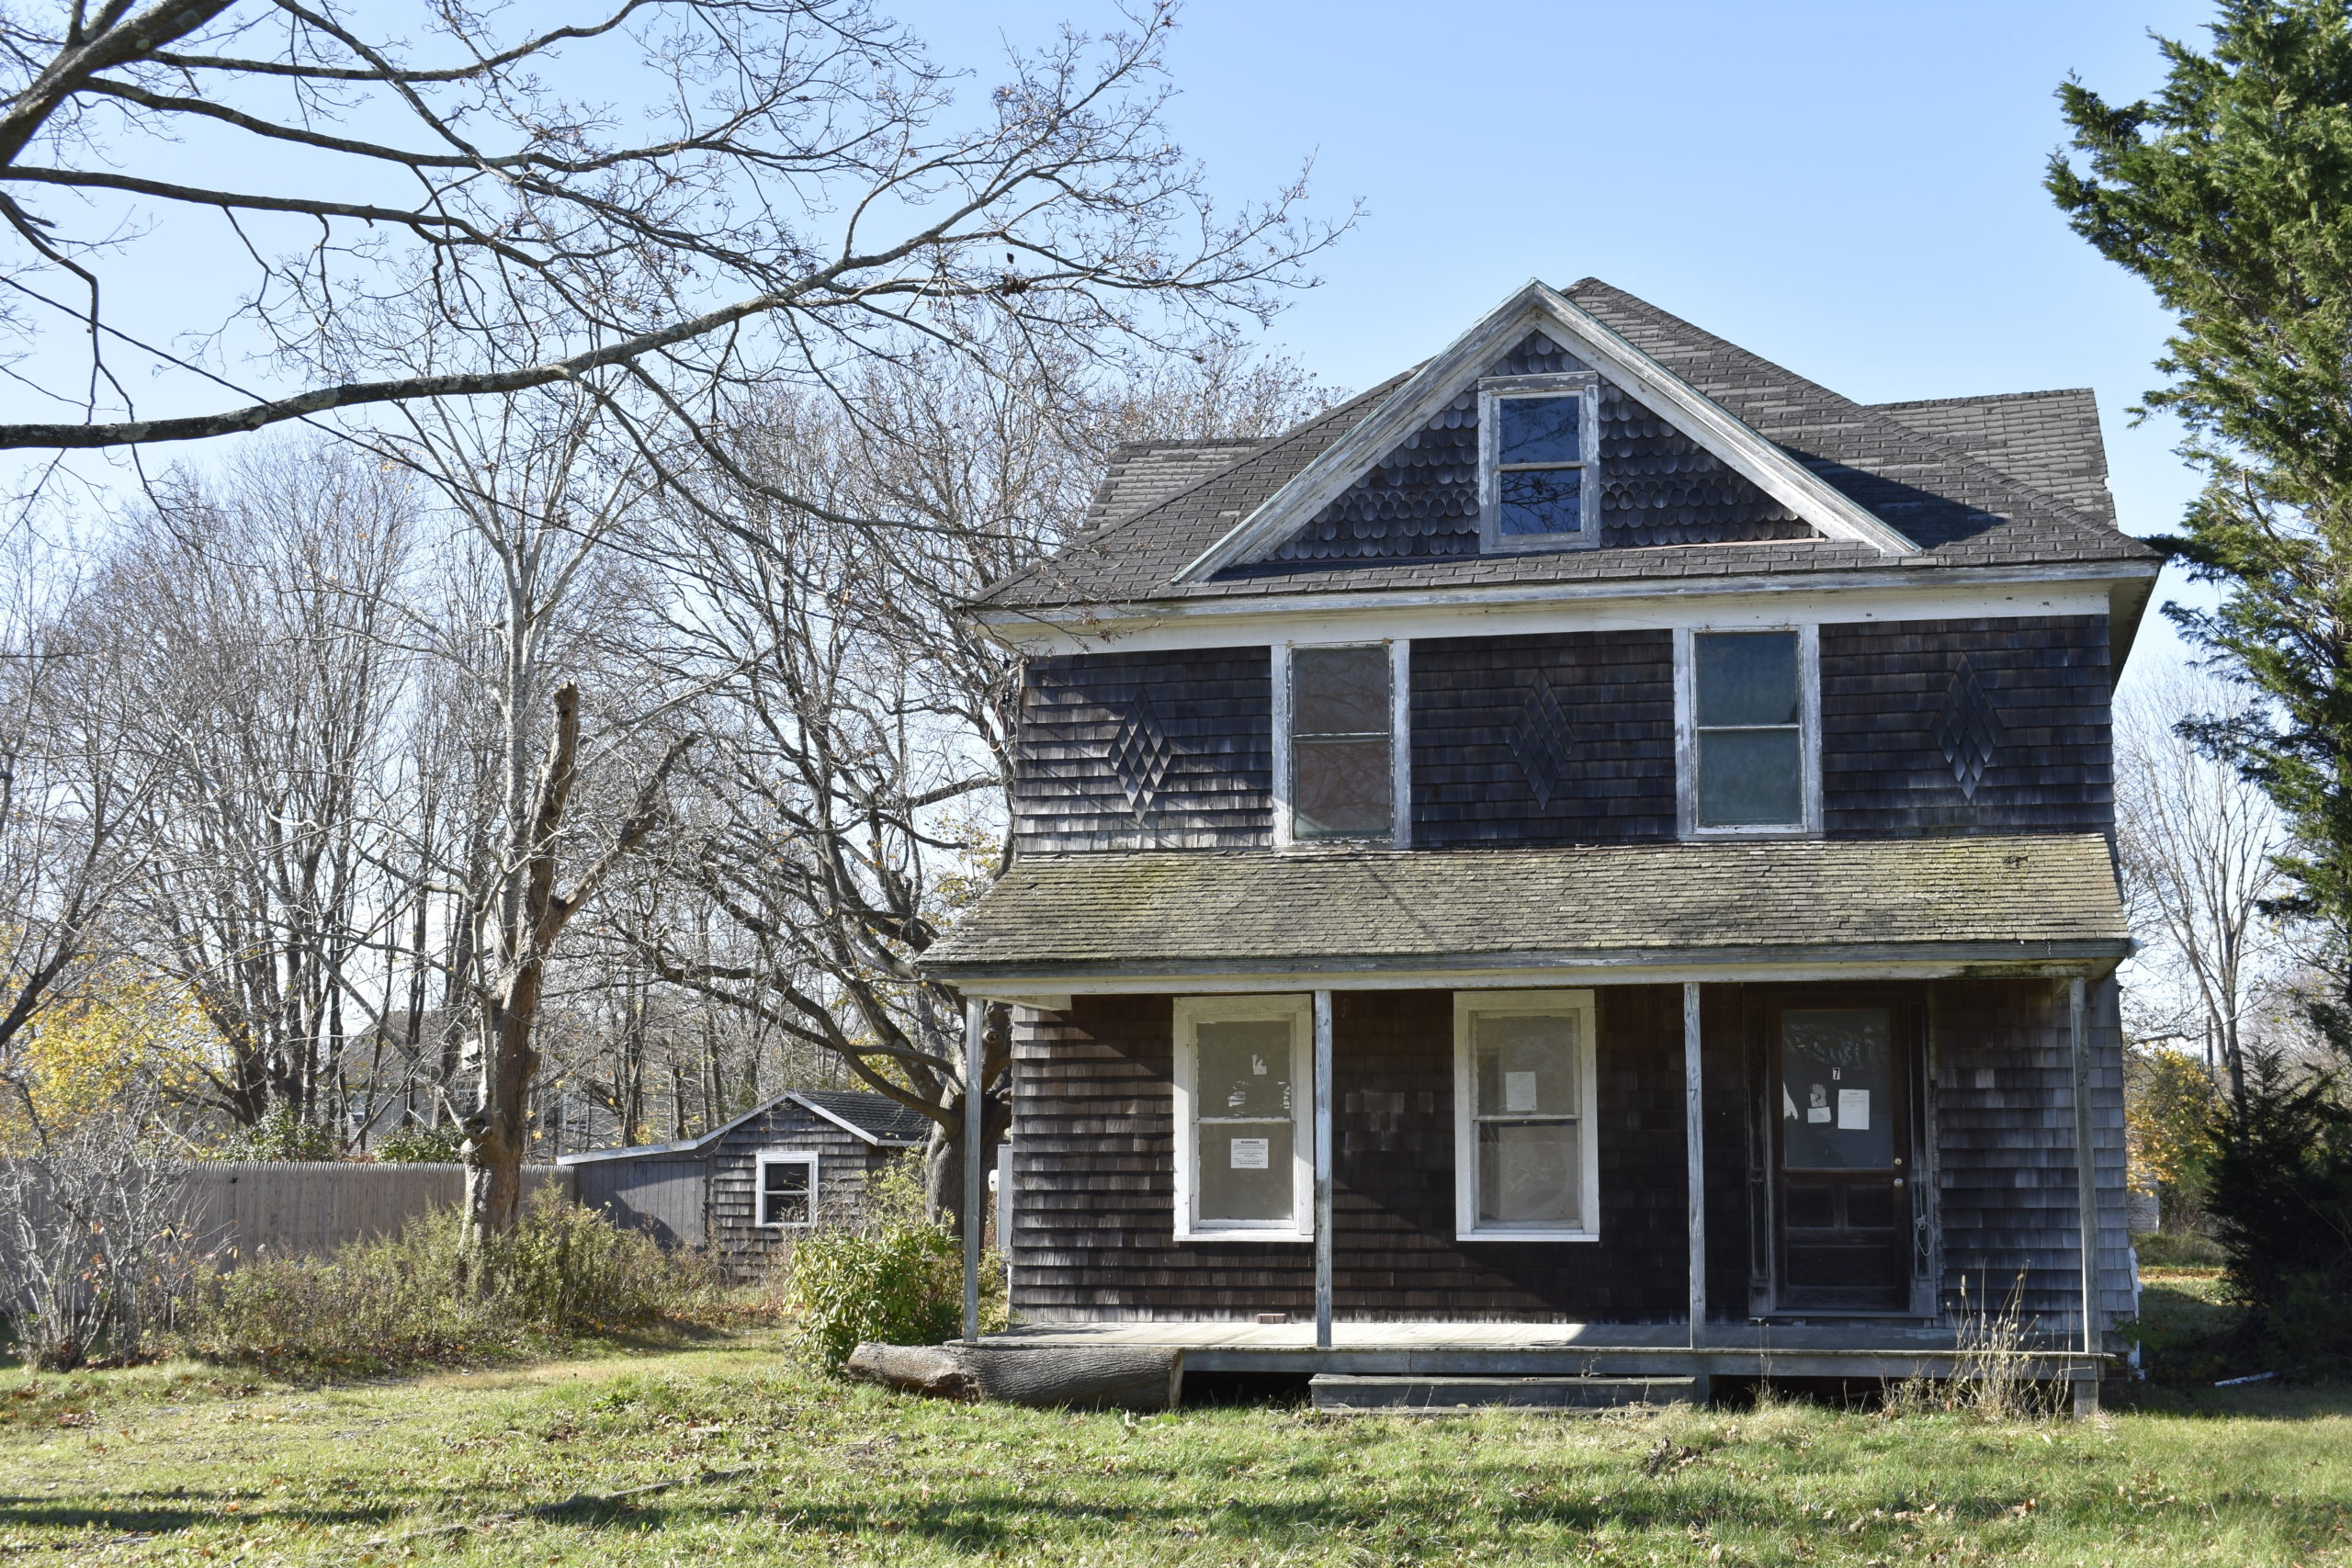 Southampton Town has identified a neglected house on North Bay Avenue in Eastport as a